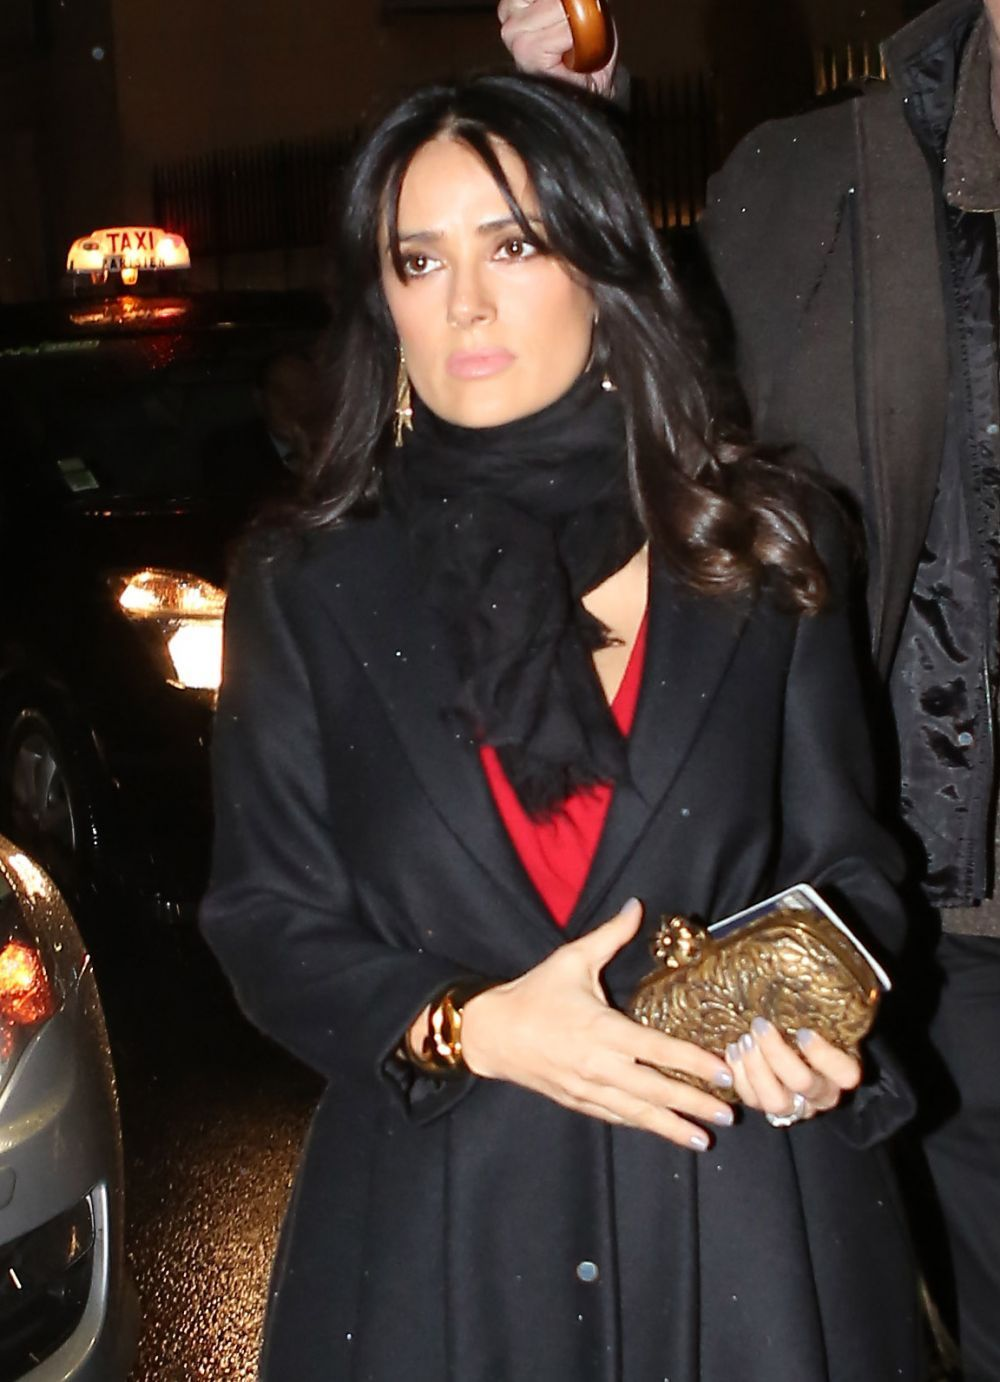 Salma_Hayek_arrives_for_the_Giambattista_Valli_Spring_Summer_fashion_show_at_the_gilded_Italian_Embassy_in_Paris_21.1.2013_04